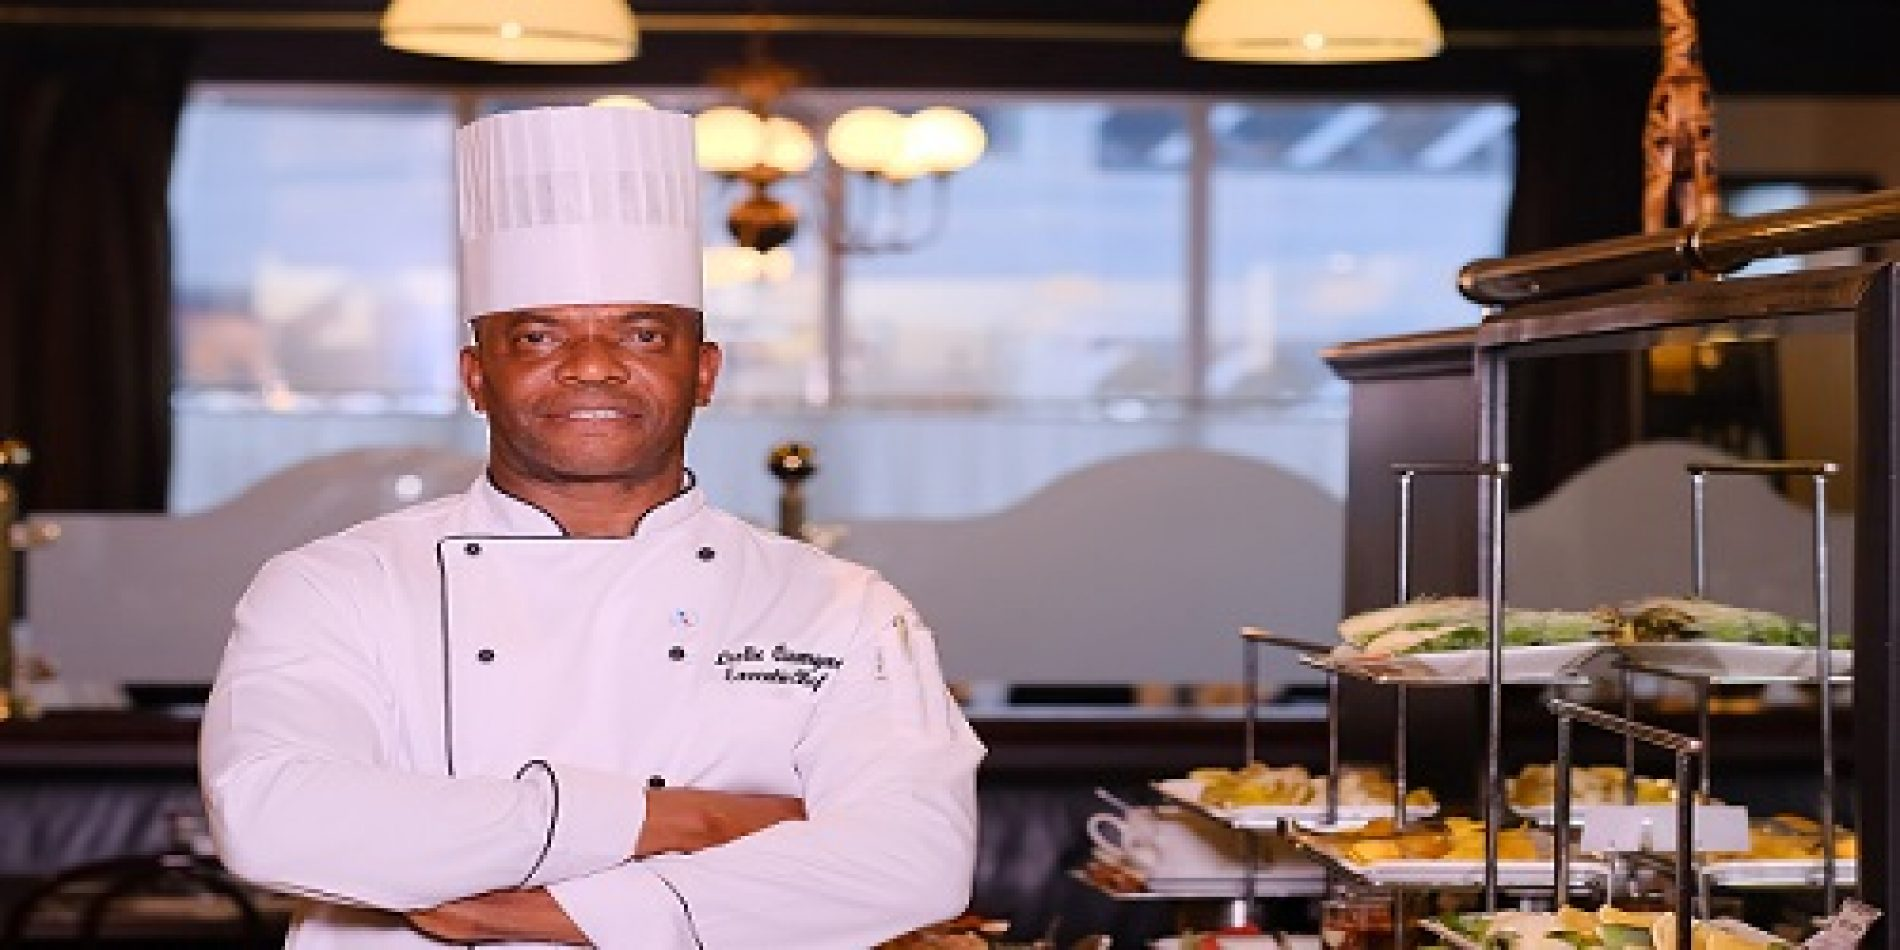 FOUR POINTS BY SHERATON LAGOS INTRODUCES NEW EXECUTIVE CHEF